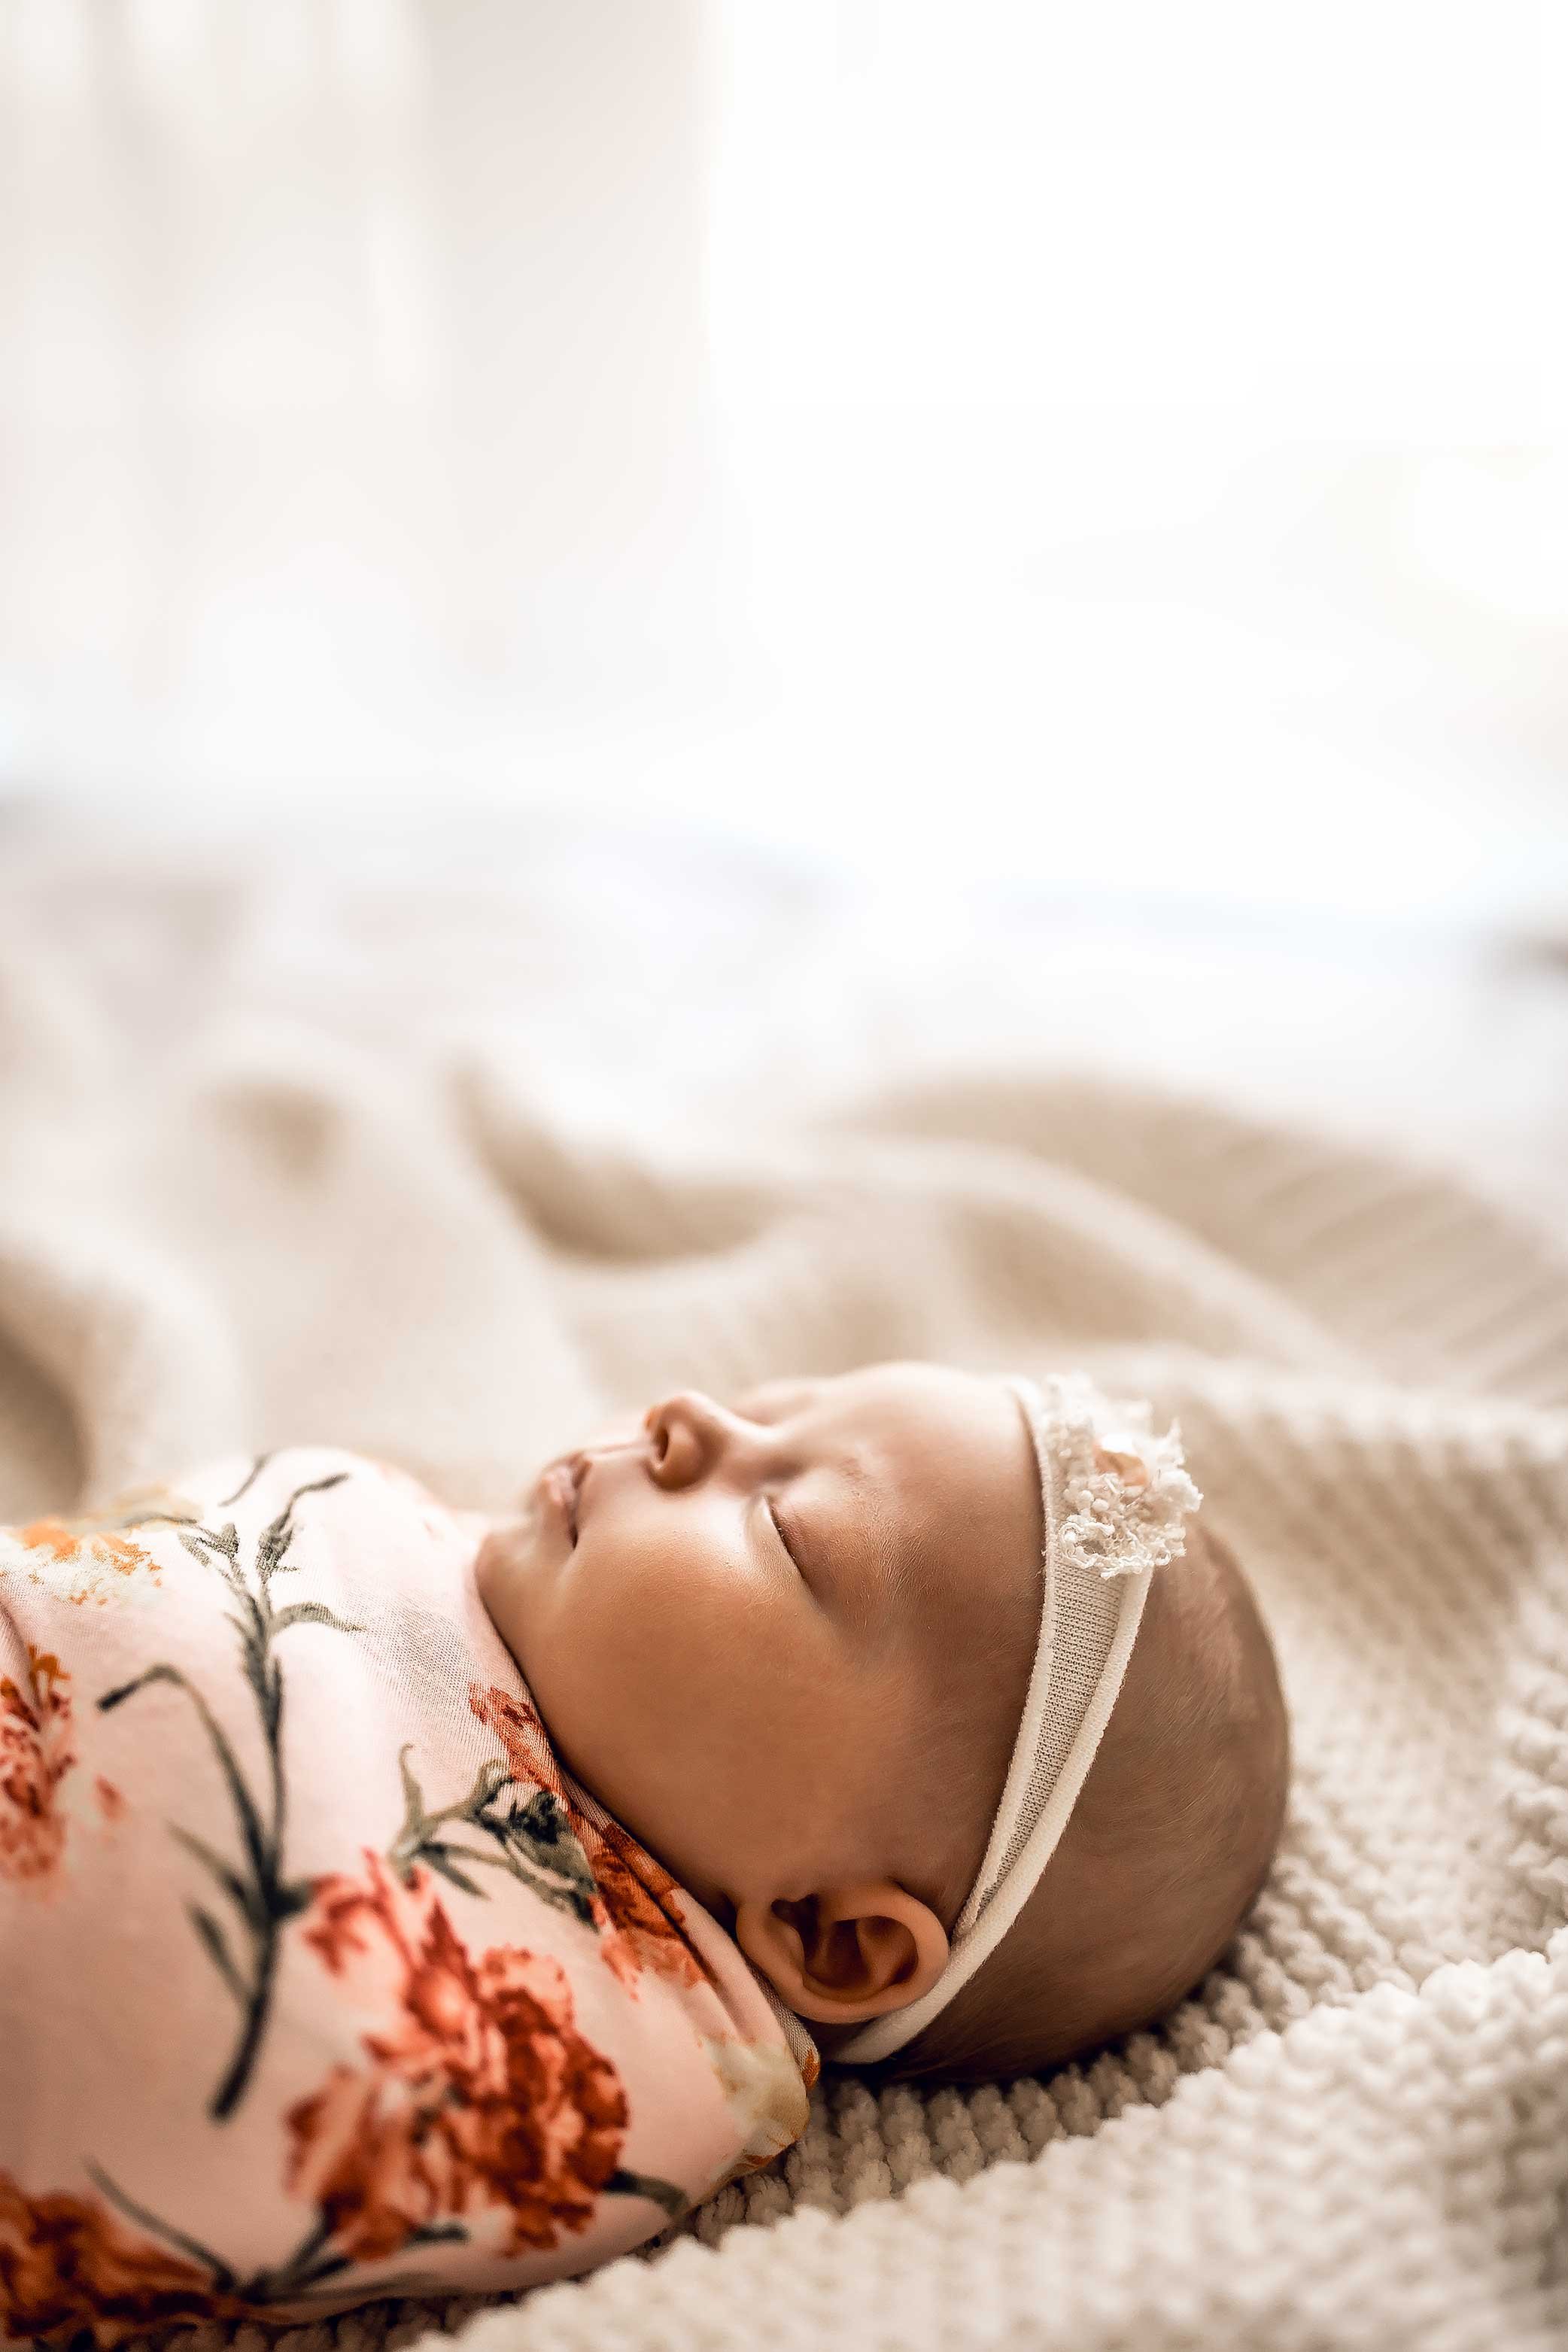 shelby-schiller-photography-studio-newborn-college-station-girl-34.jpg